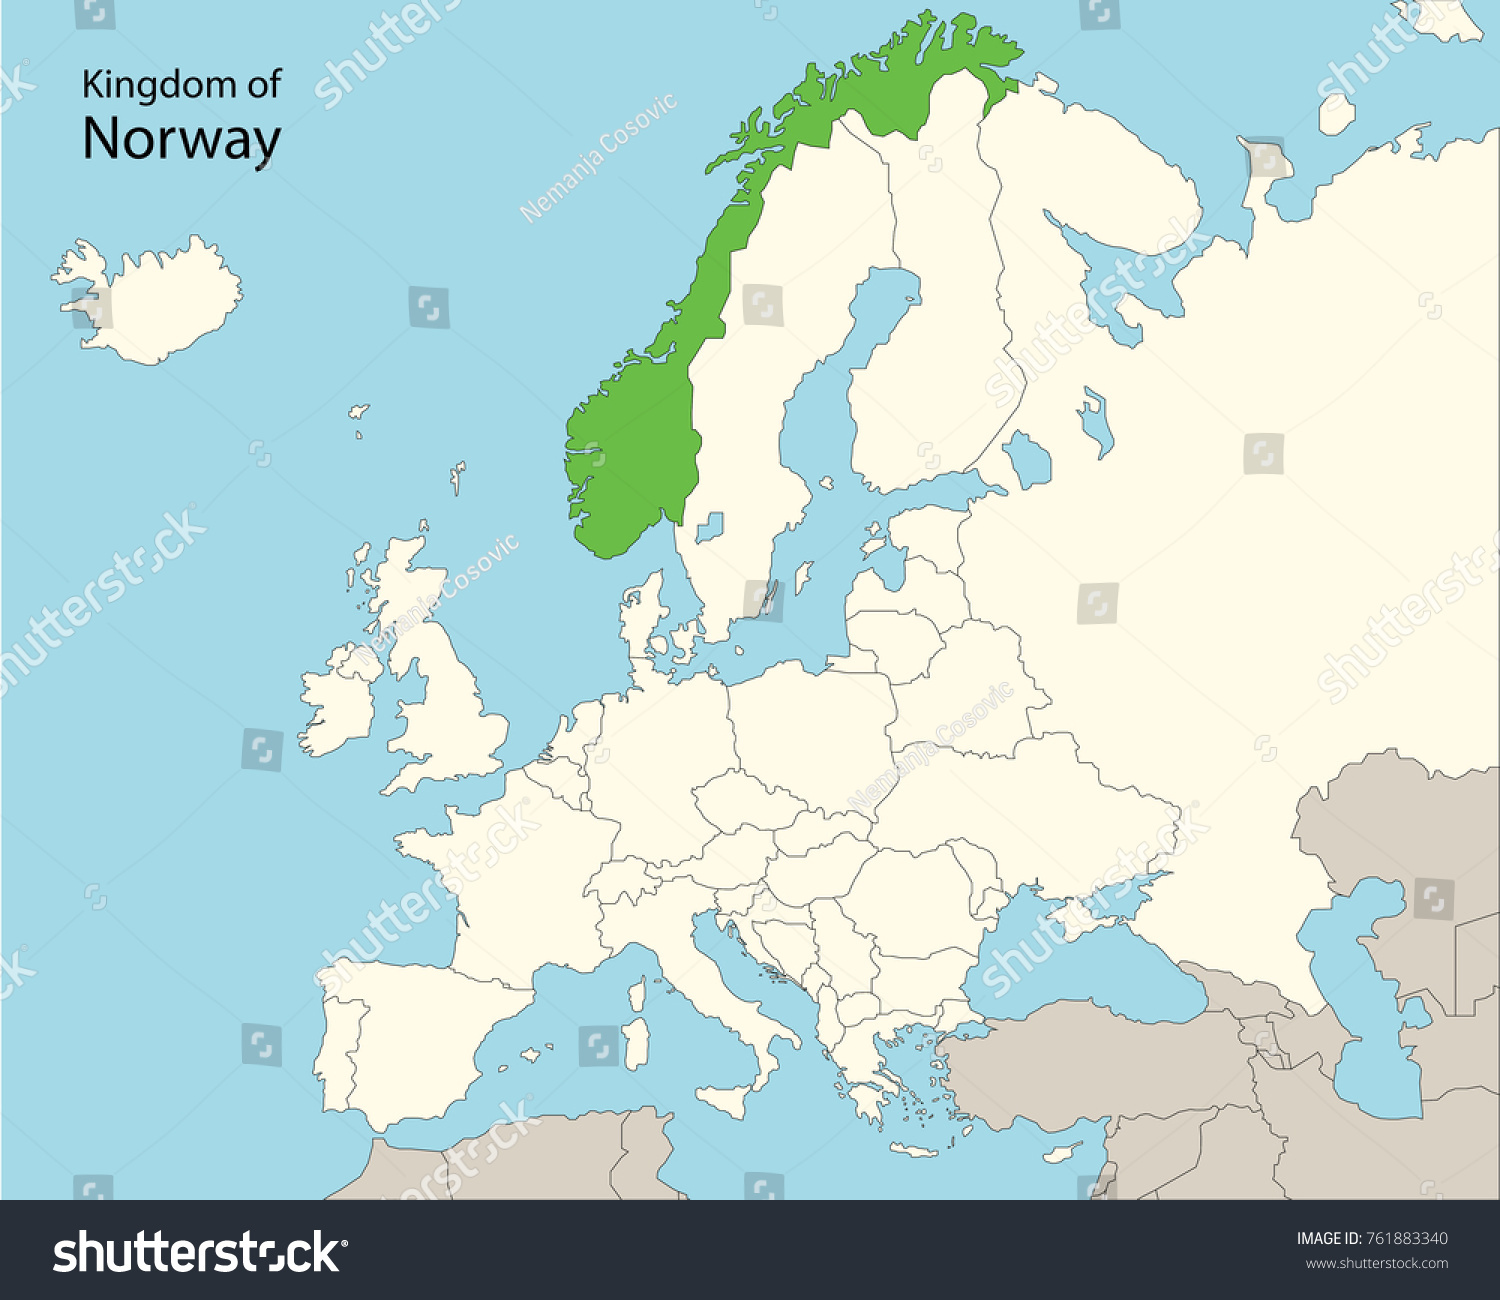 Norway On Europe Map.Europe Map Norway Stock Vector Royalty Free 761883340 Shutterstock